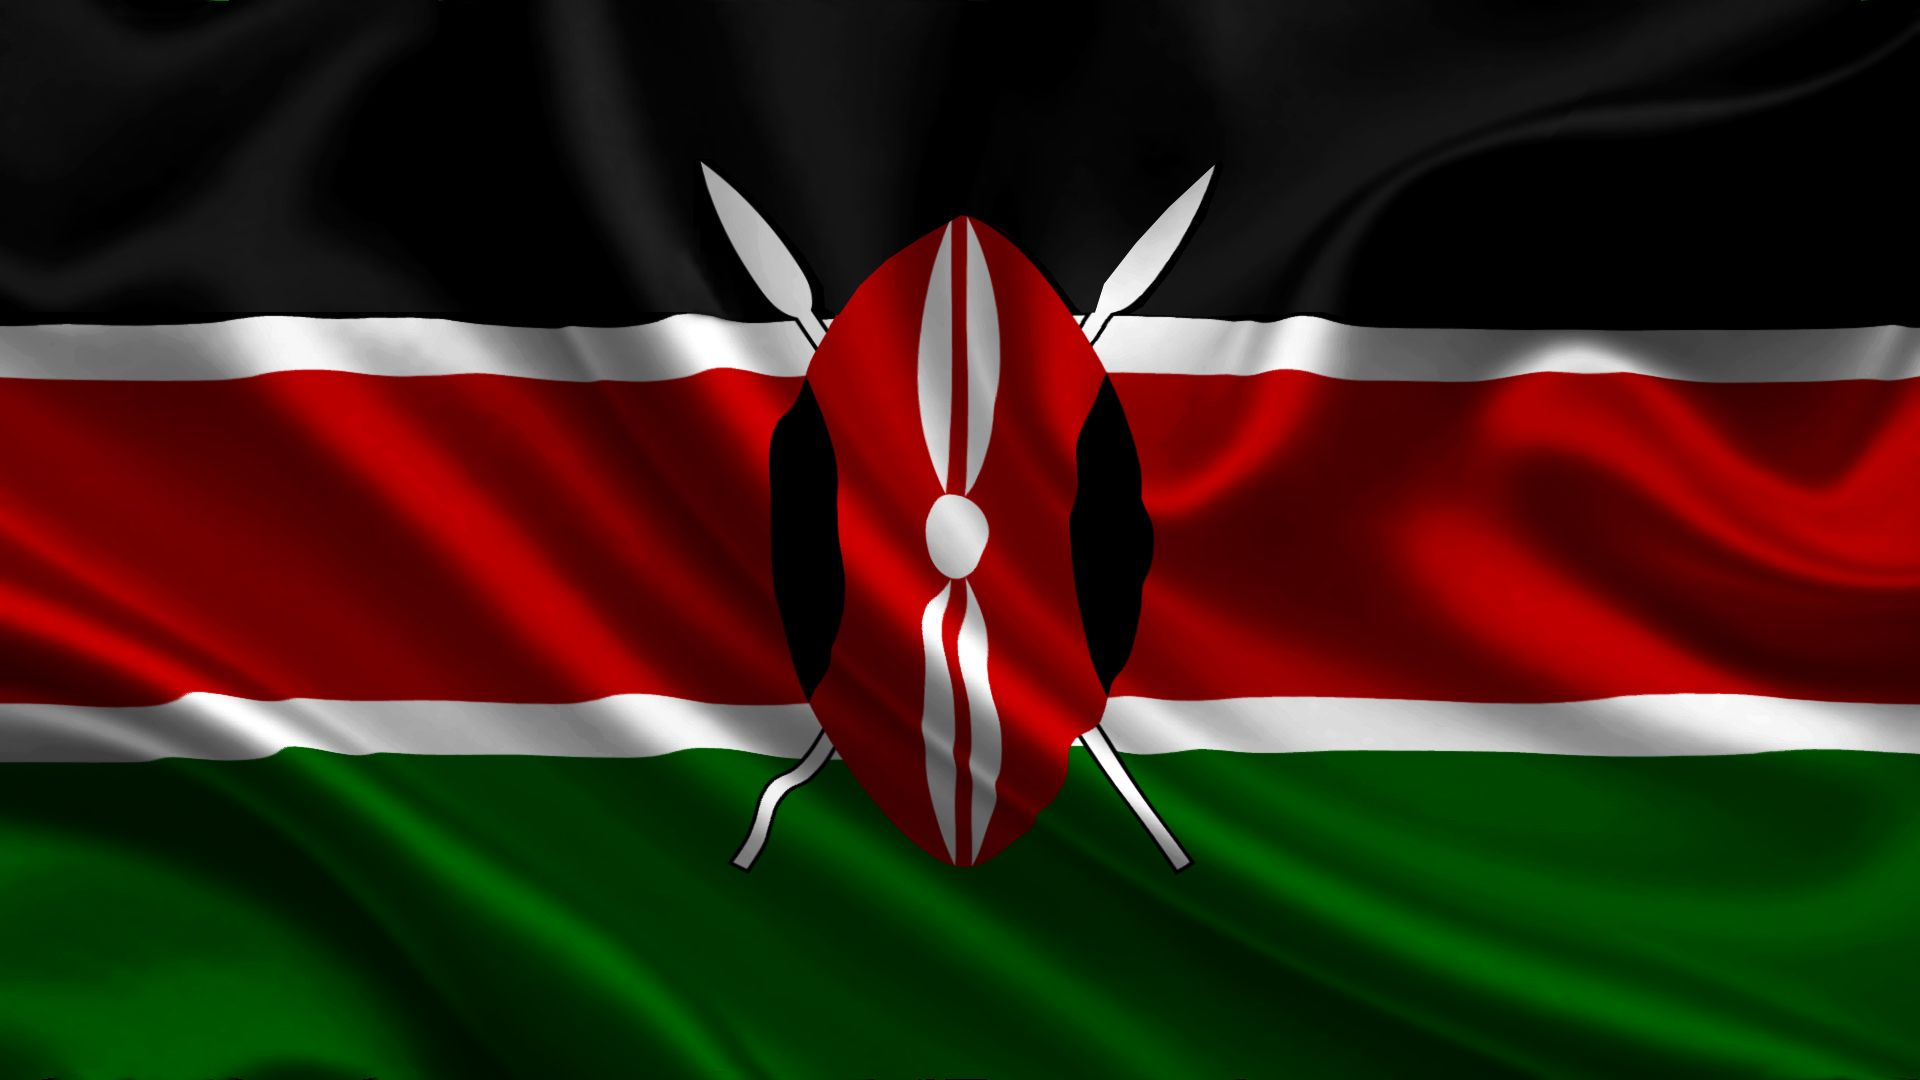 1920x1080 Kenya Flag HD Images and Wallpapers 2016 Free Download ...